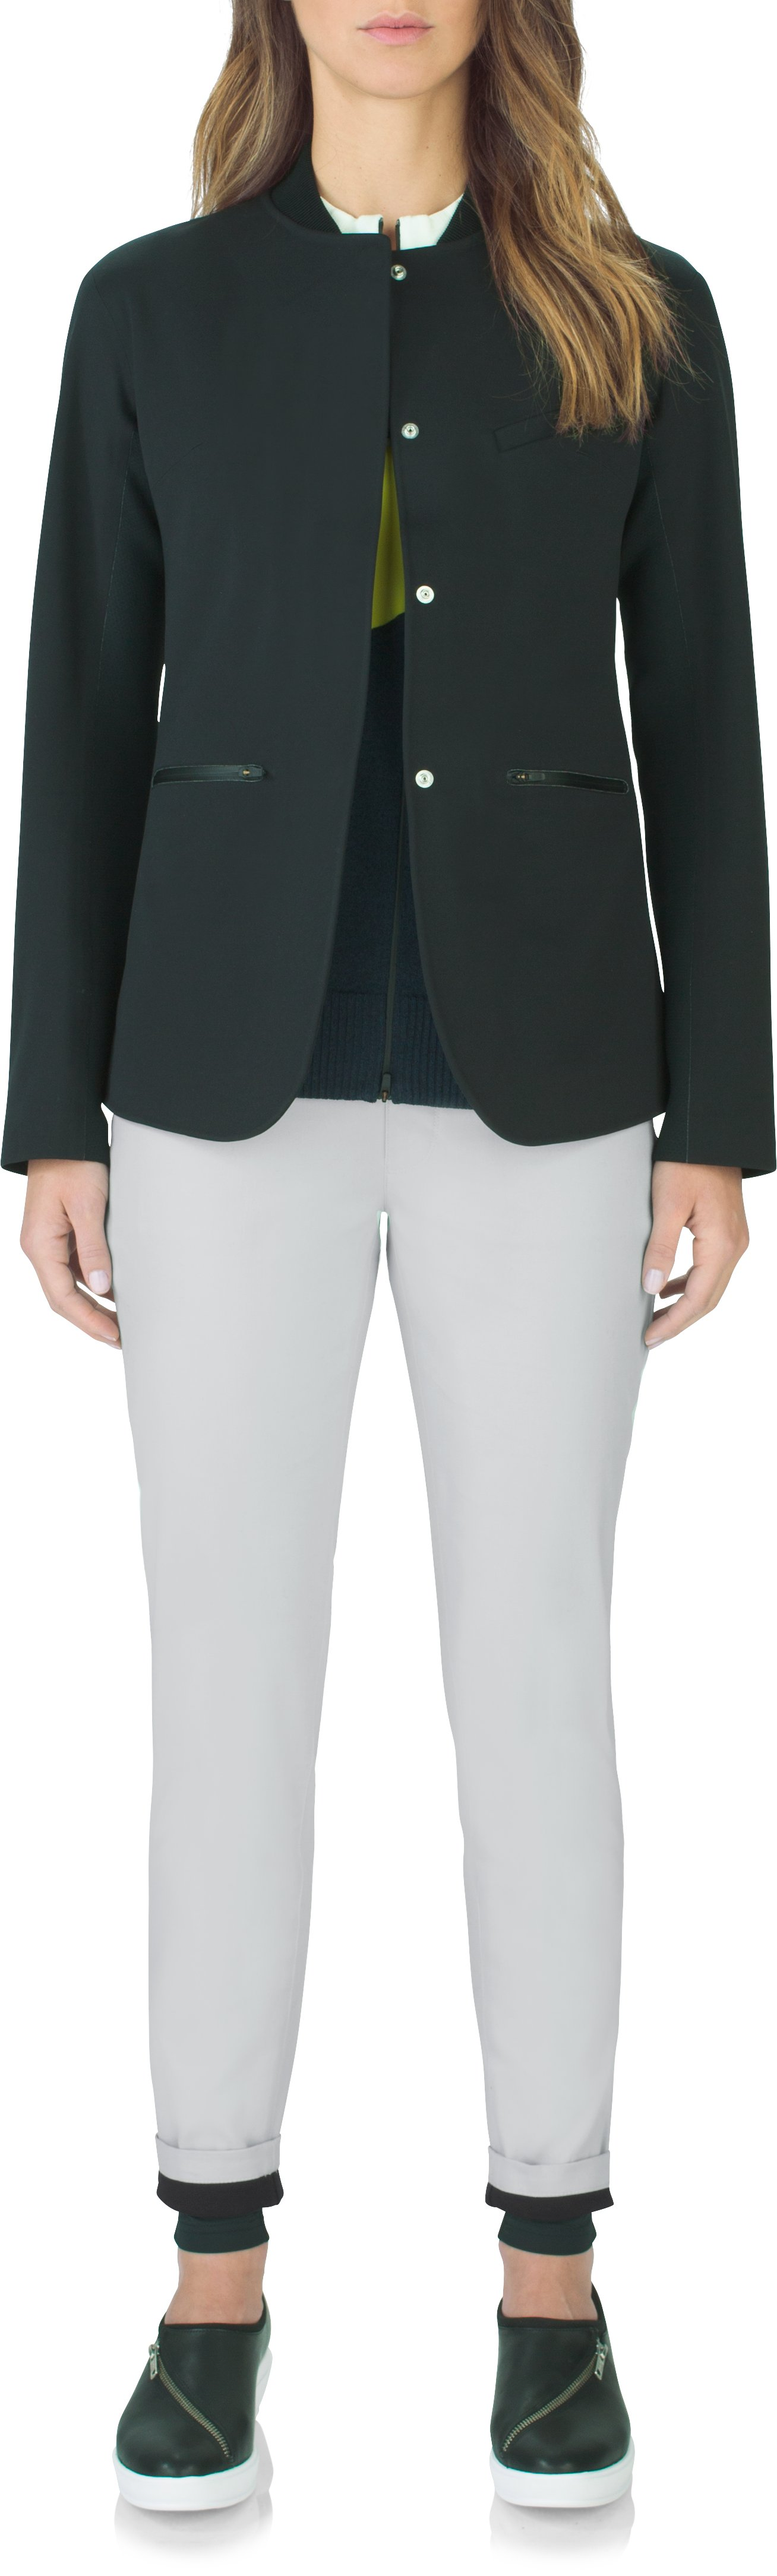 Women's UAS Endurance Chinos, GLACIER GRAY, Front